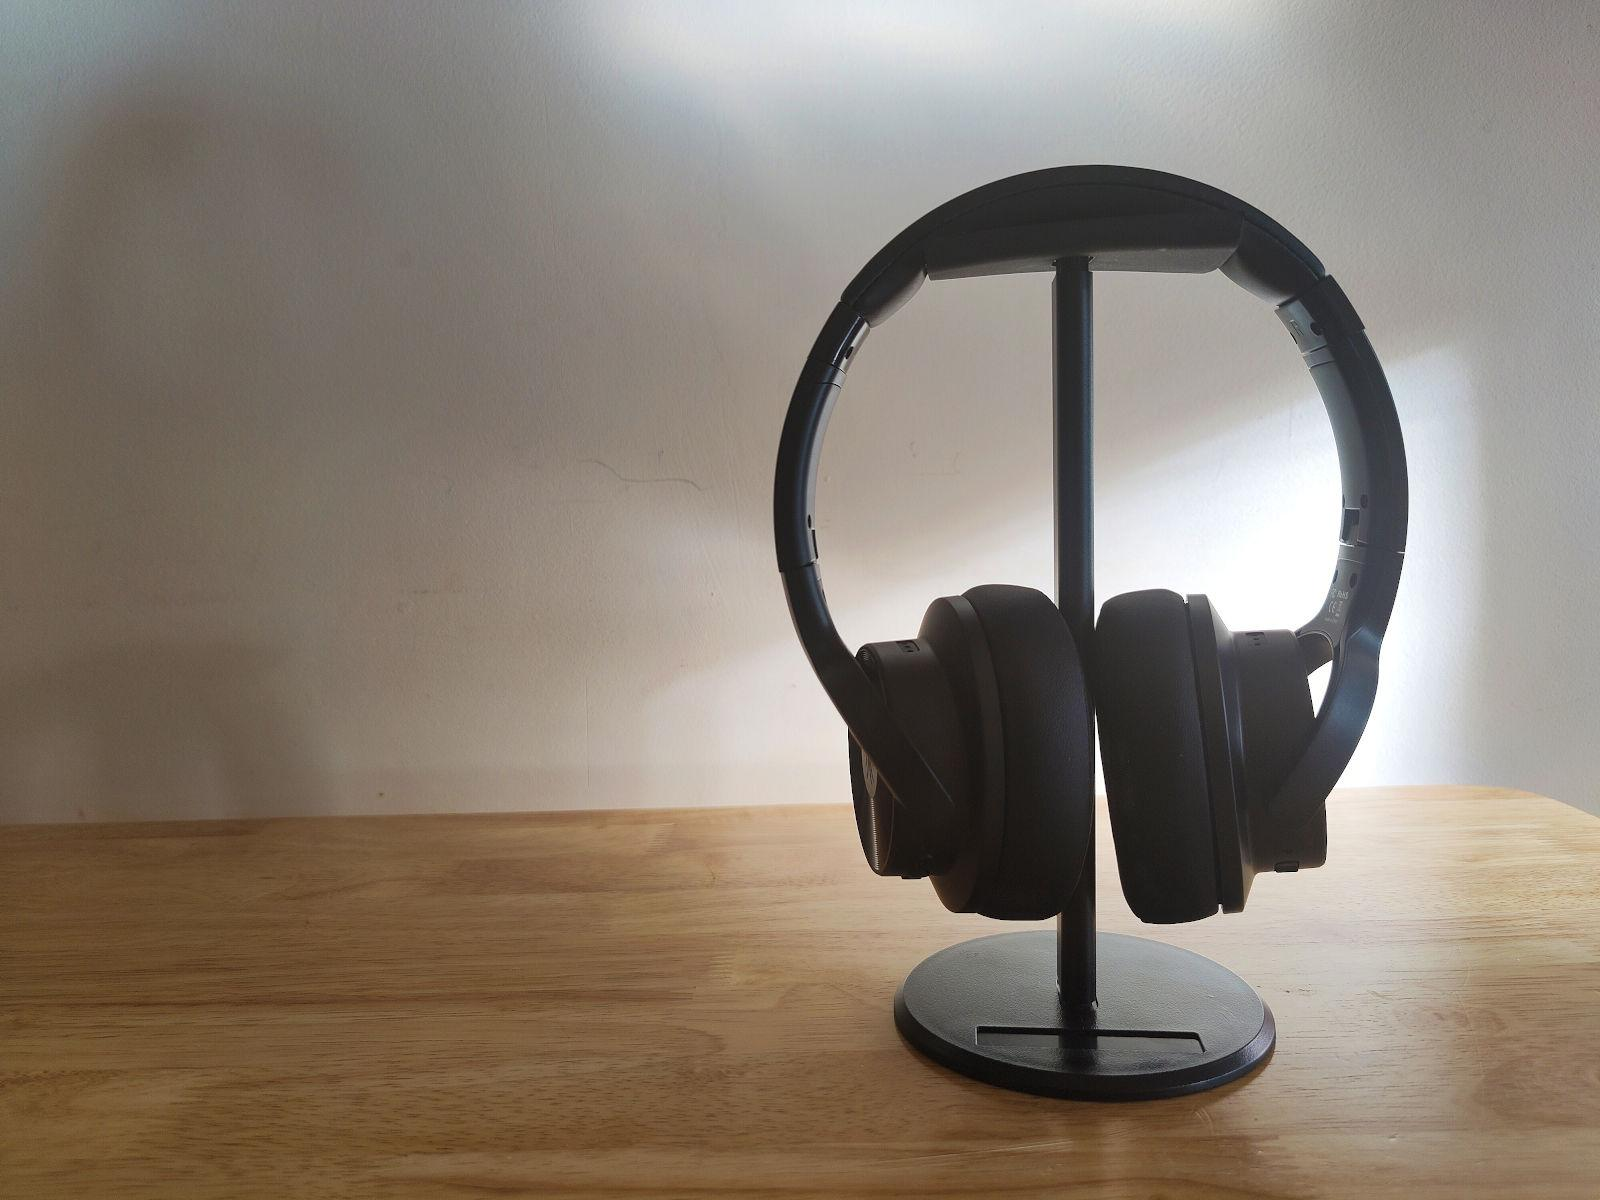 OneOdio A30 Wireless Headphone Review